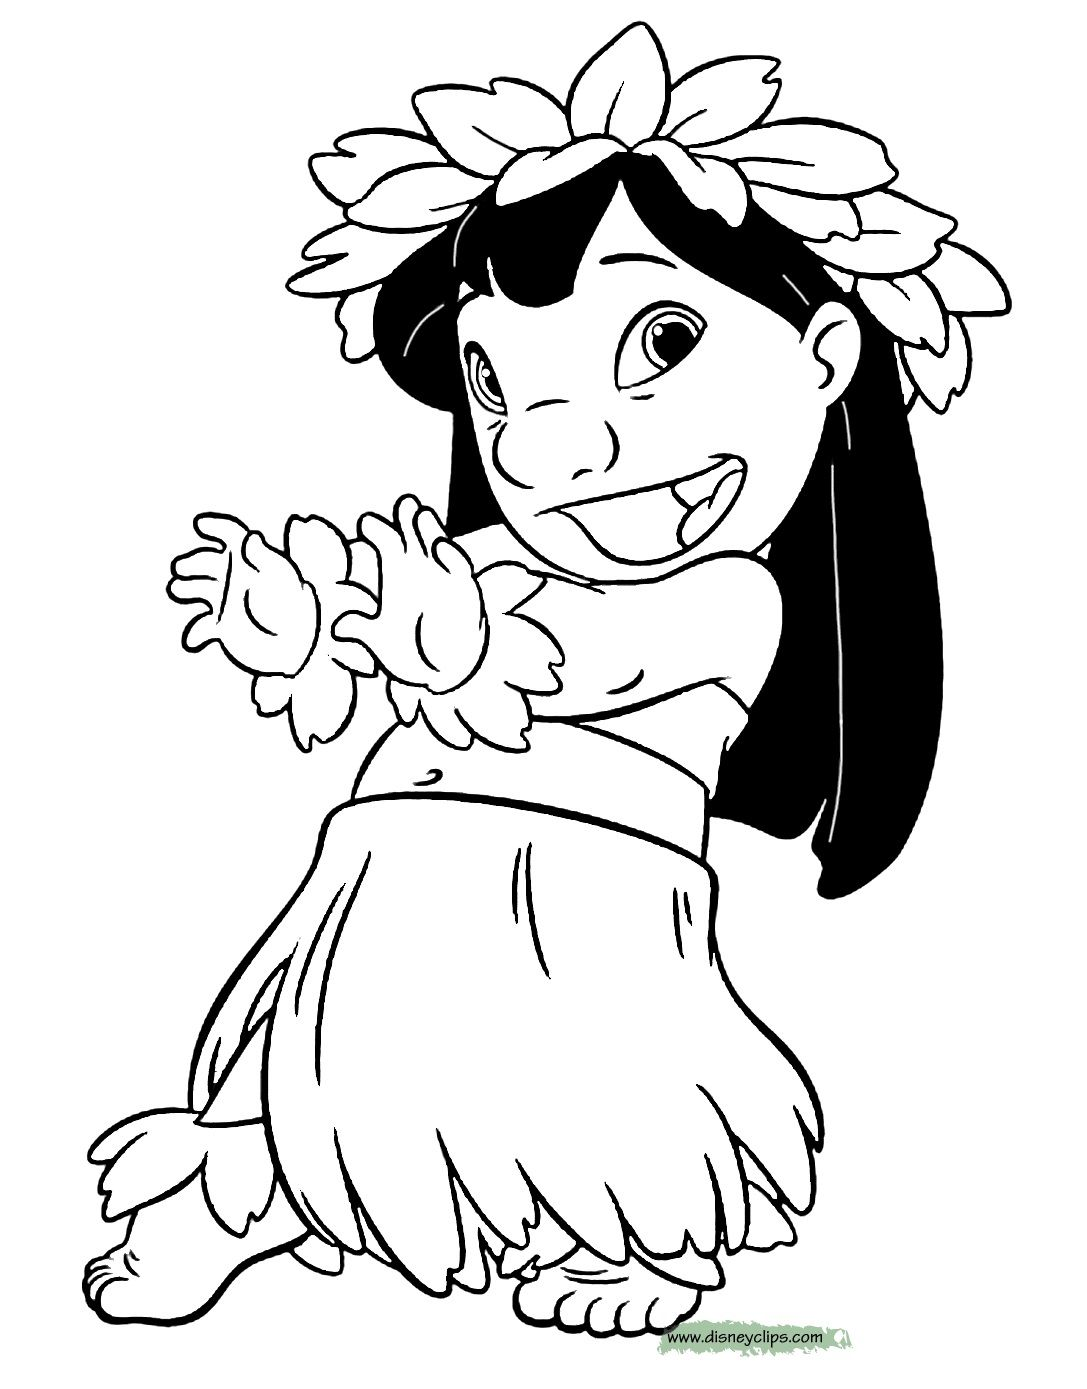 Lilo And Stitch Coloring Pages Lilo & Stitch Coloring Page  Y Blank Pattern  Lilo & Stitch